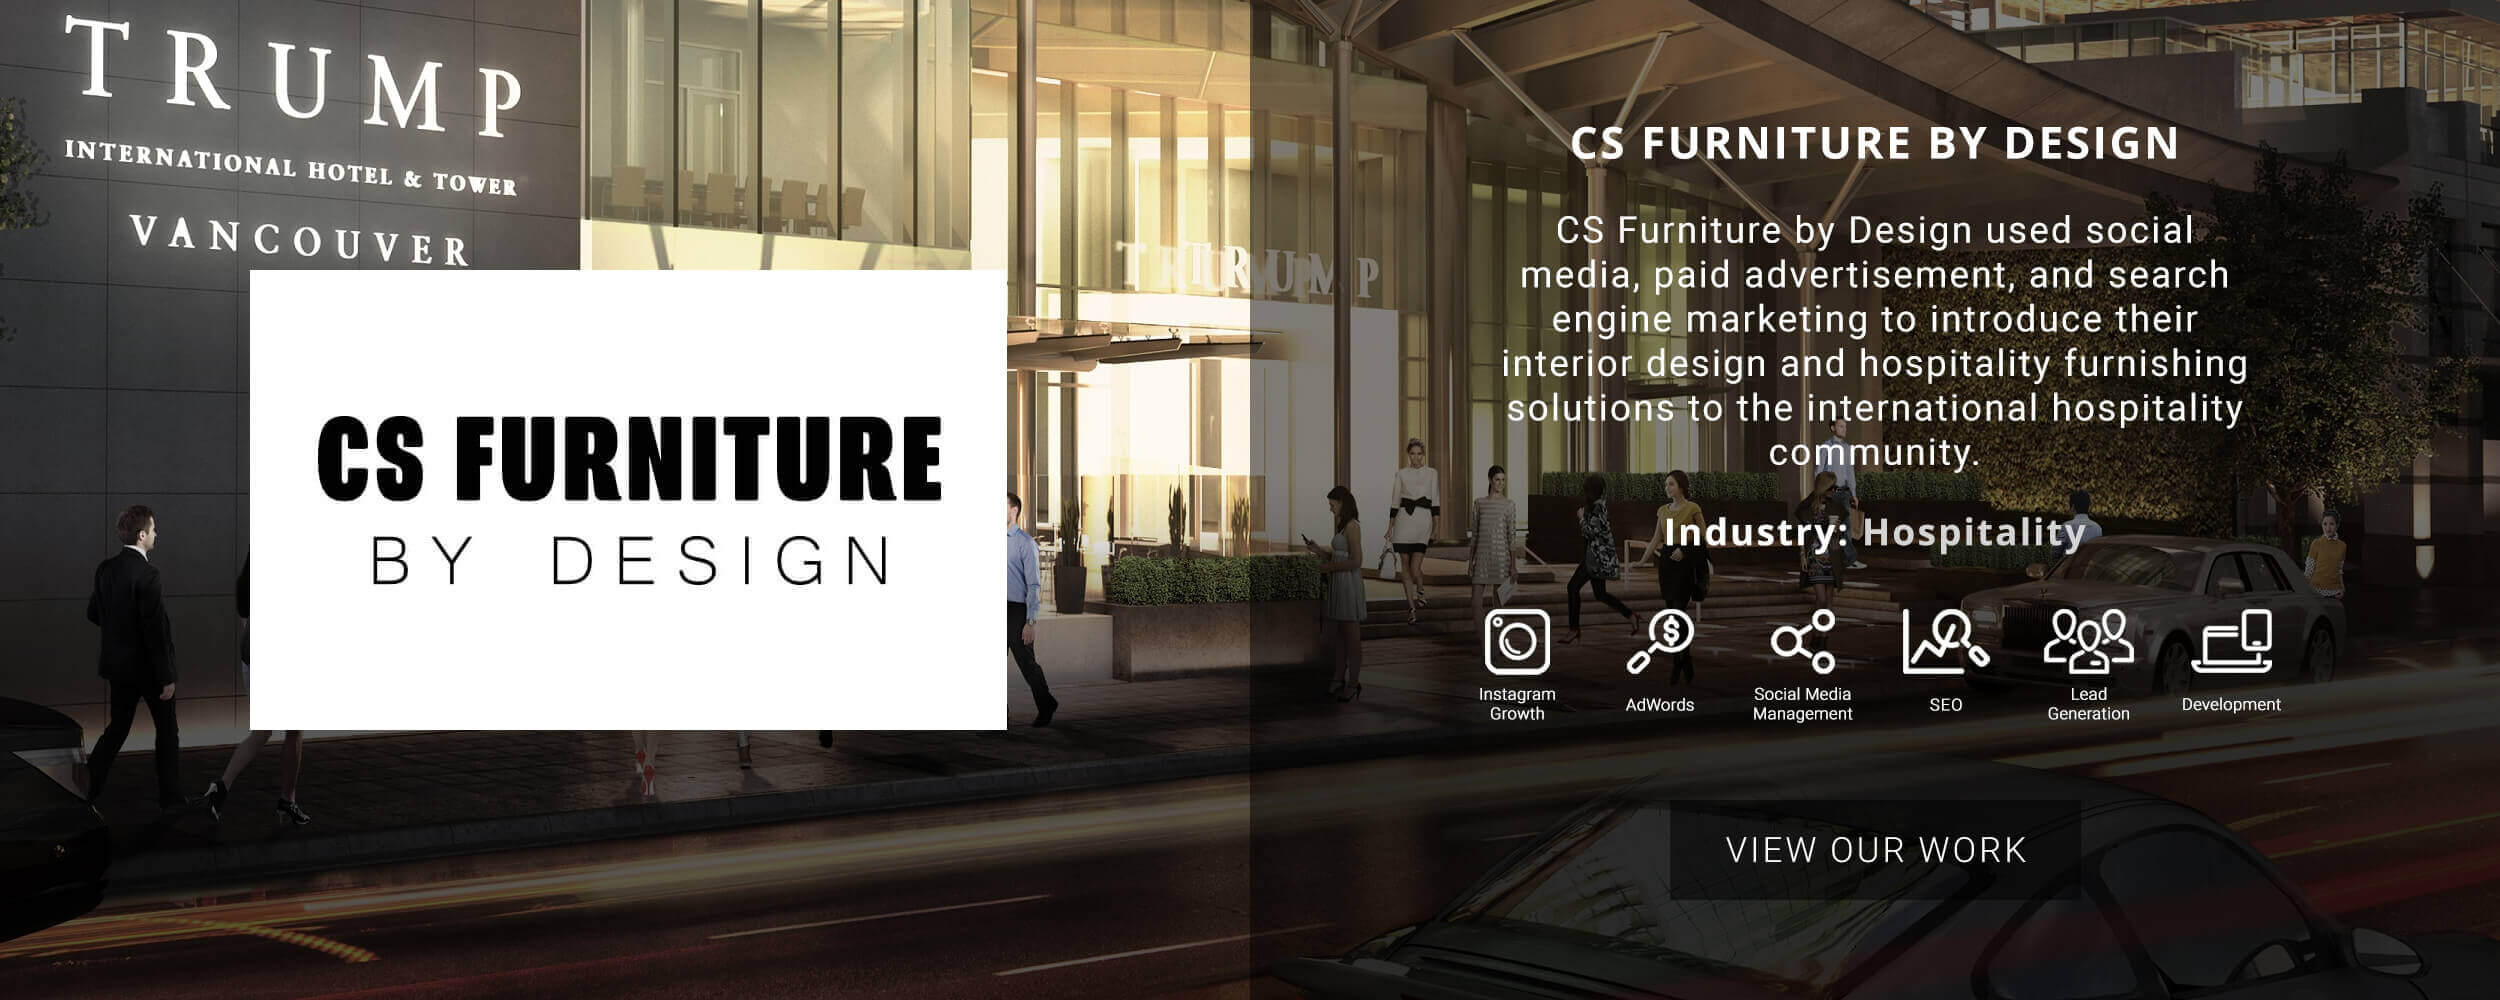 CS Furniture by Design Case Study